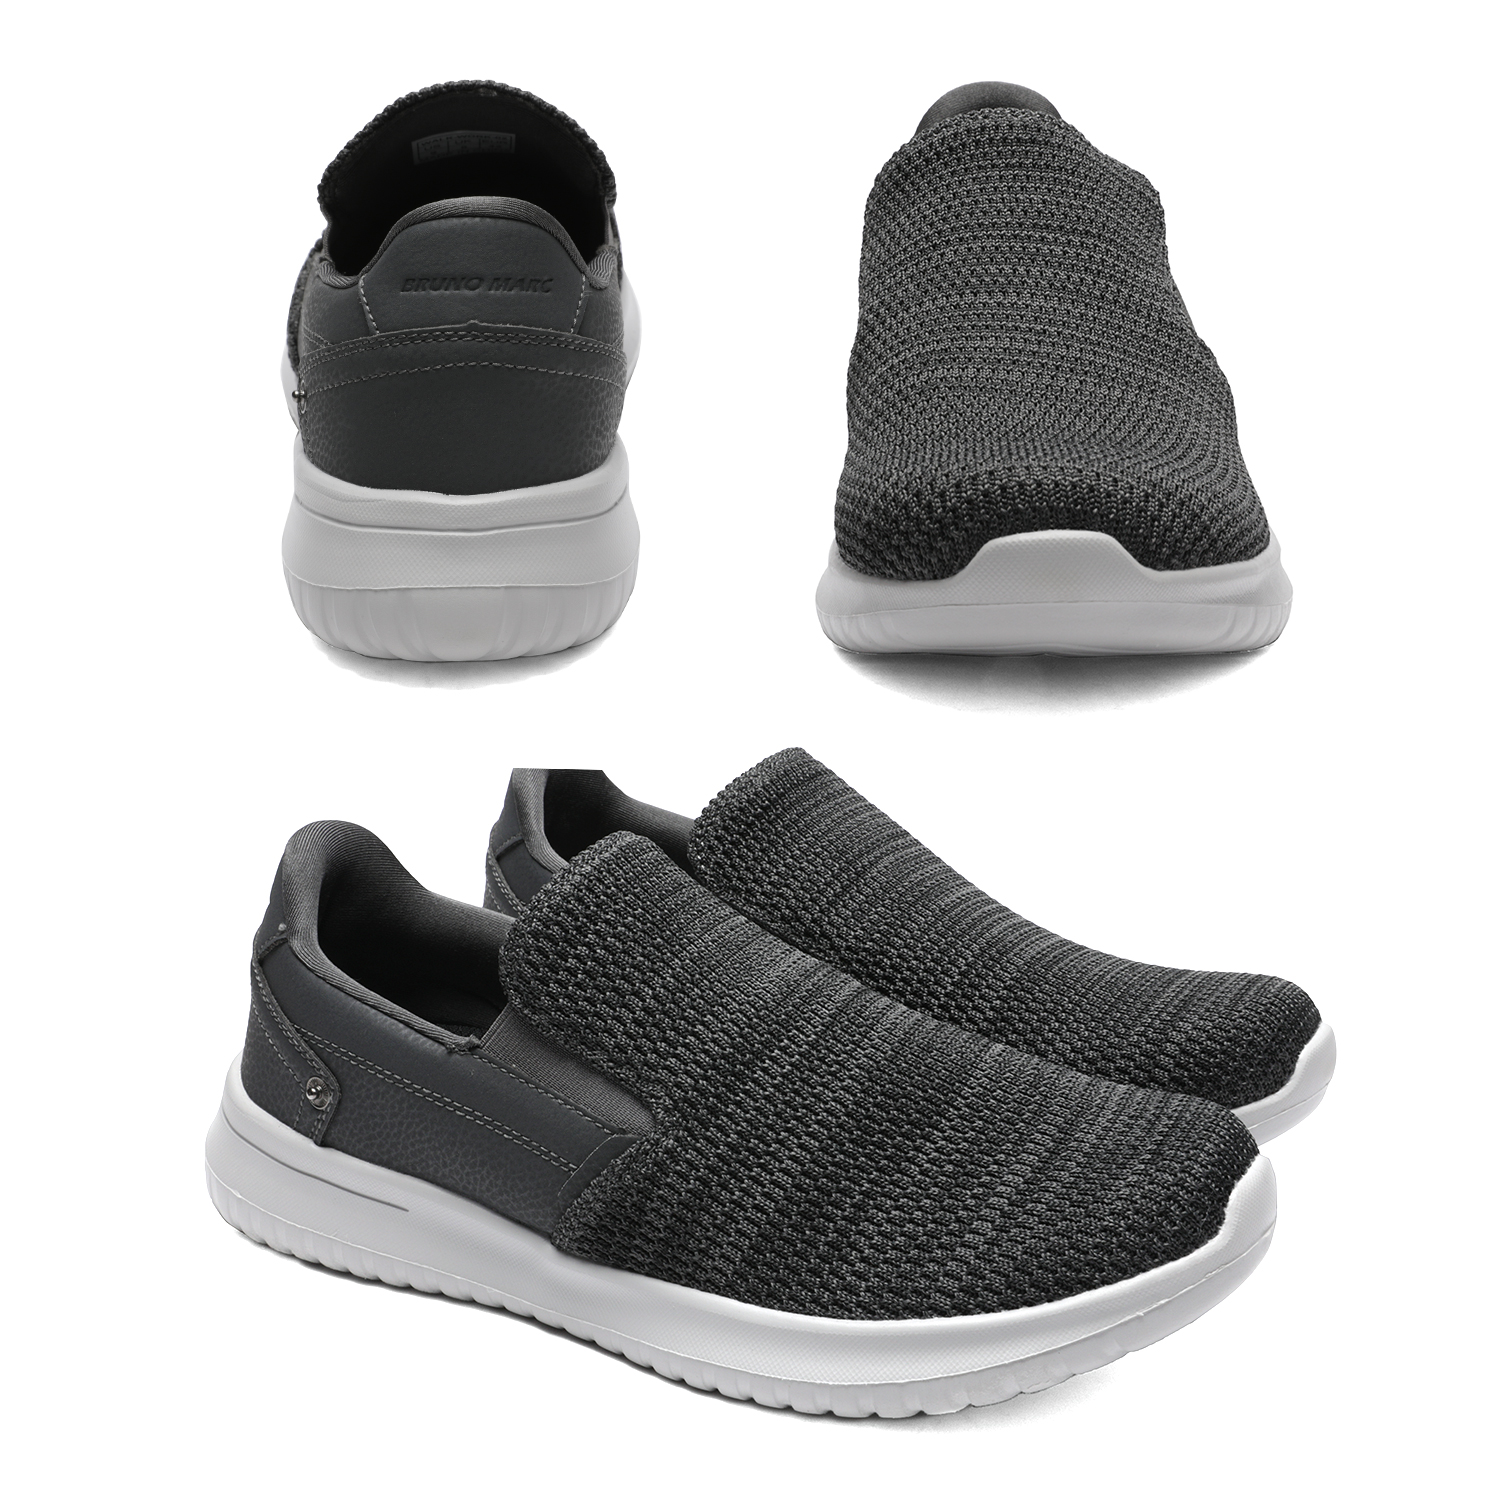 Bruno-Marc-Men-039-s-Slip-On-Walking-Shoes-Men-039-s-Sneakers-Men-Shoe-Running-Casual thumbnail 37